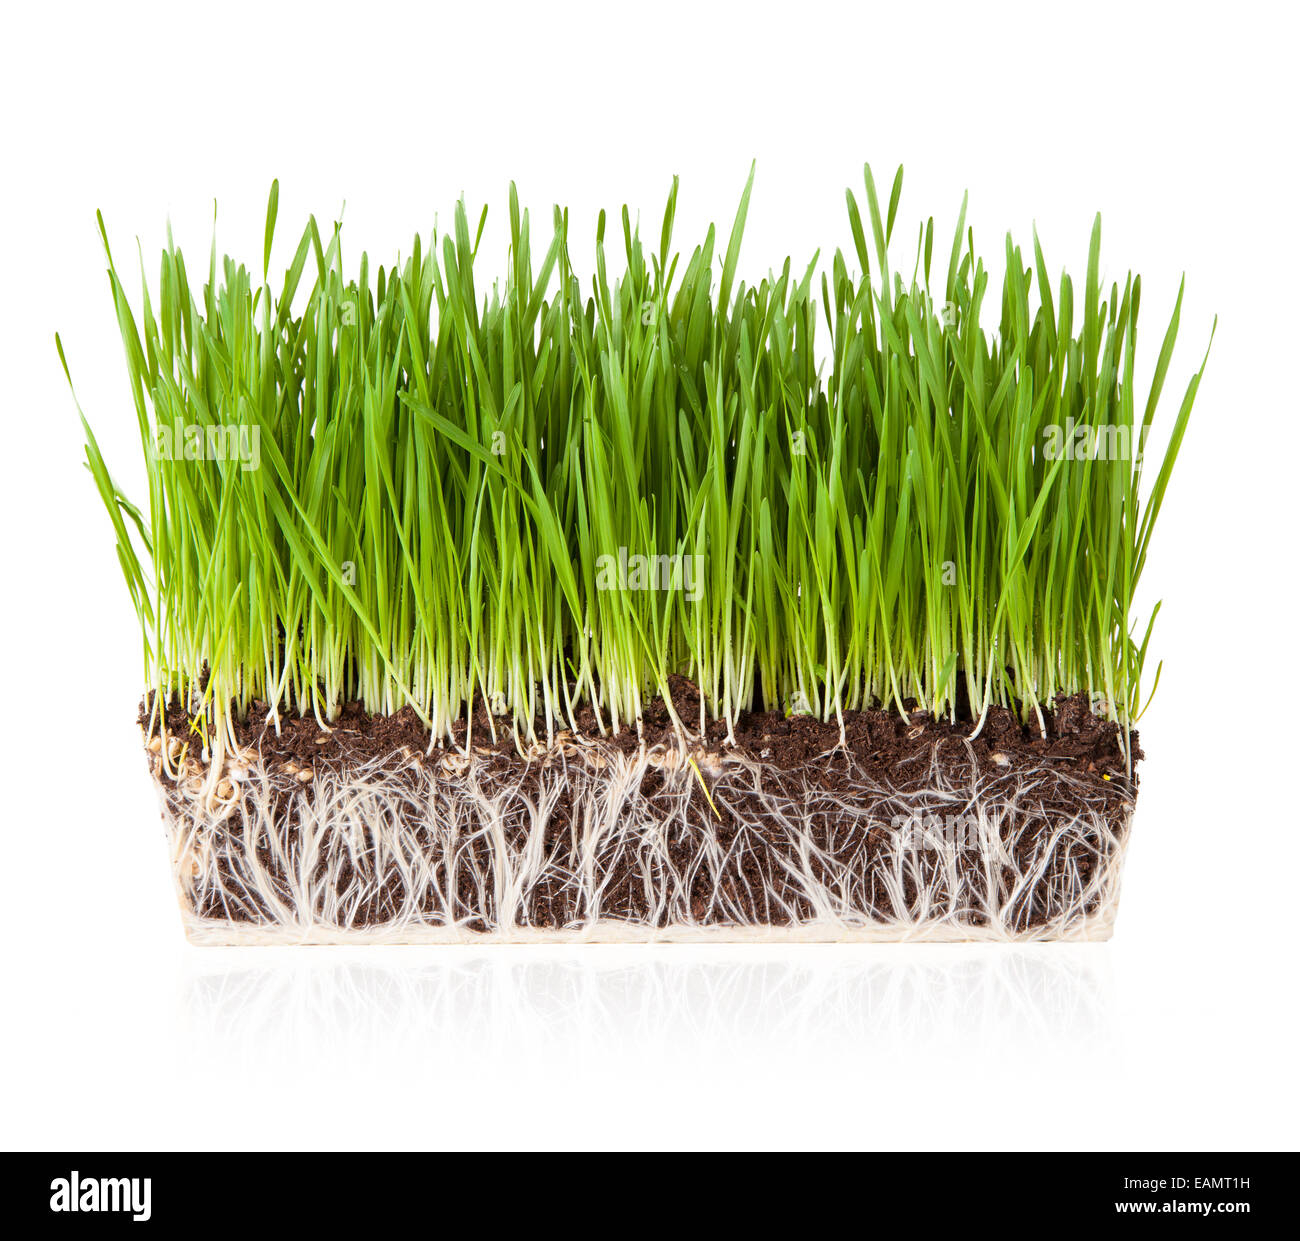 Isolated grass with roots in earth on white background - Stock Image